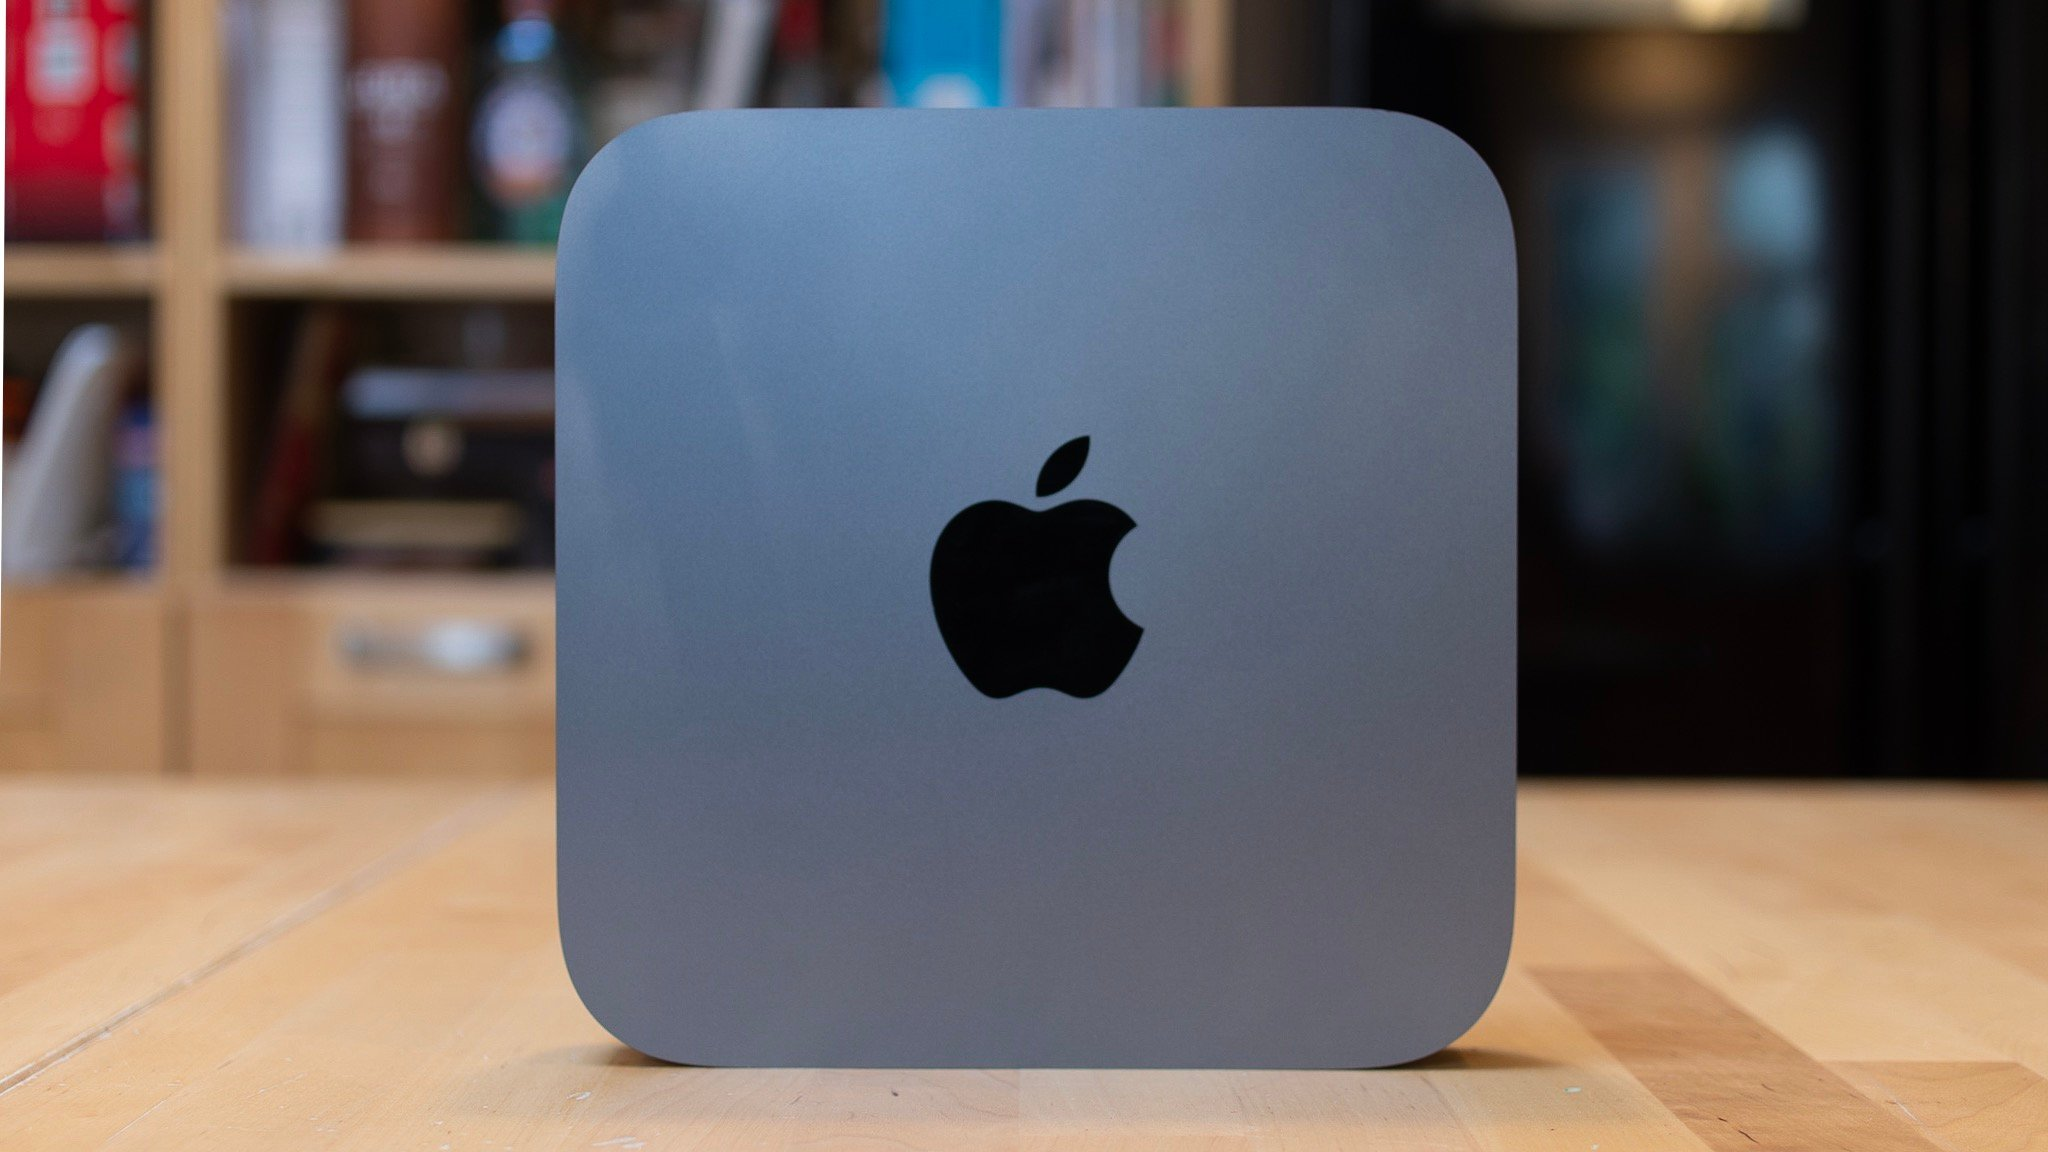 apple mac mini mgen2hn/a review